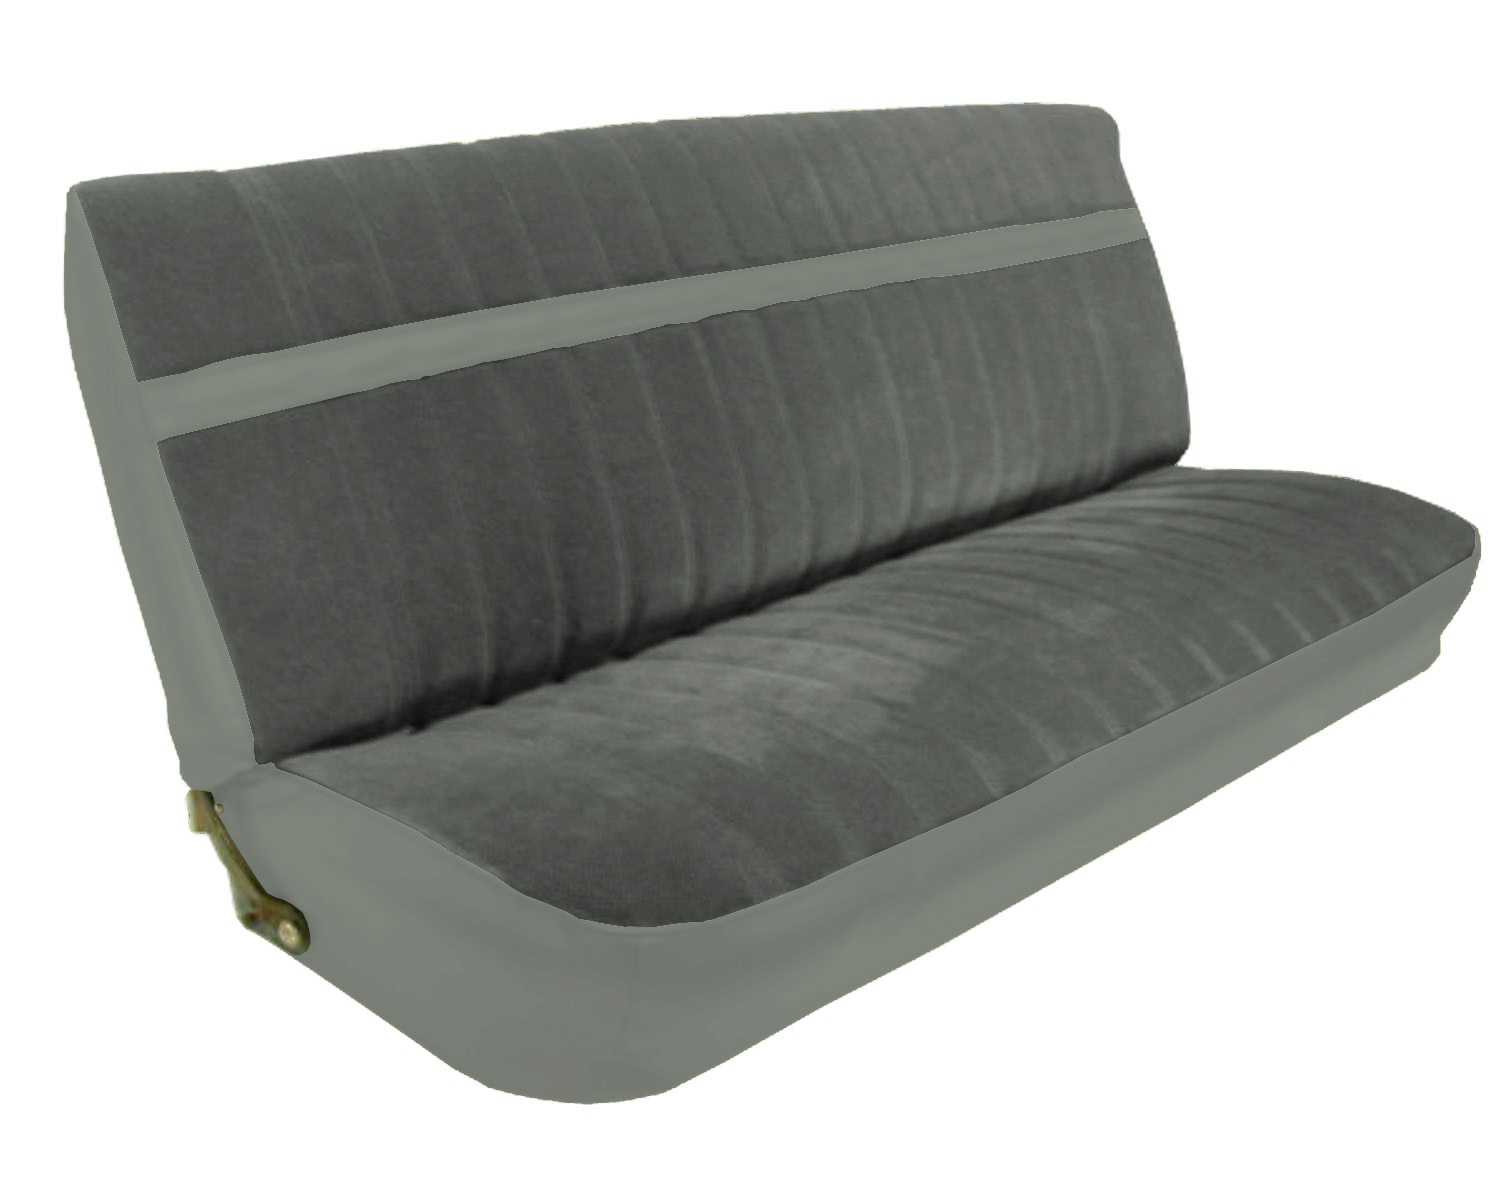 Wonderful image of Gmc Pickup Bench Seat Related Keywords Gmc Pickup Bench Seat Long  with #594E28 color and 1500x1200 pixels